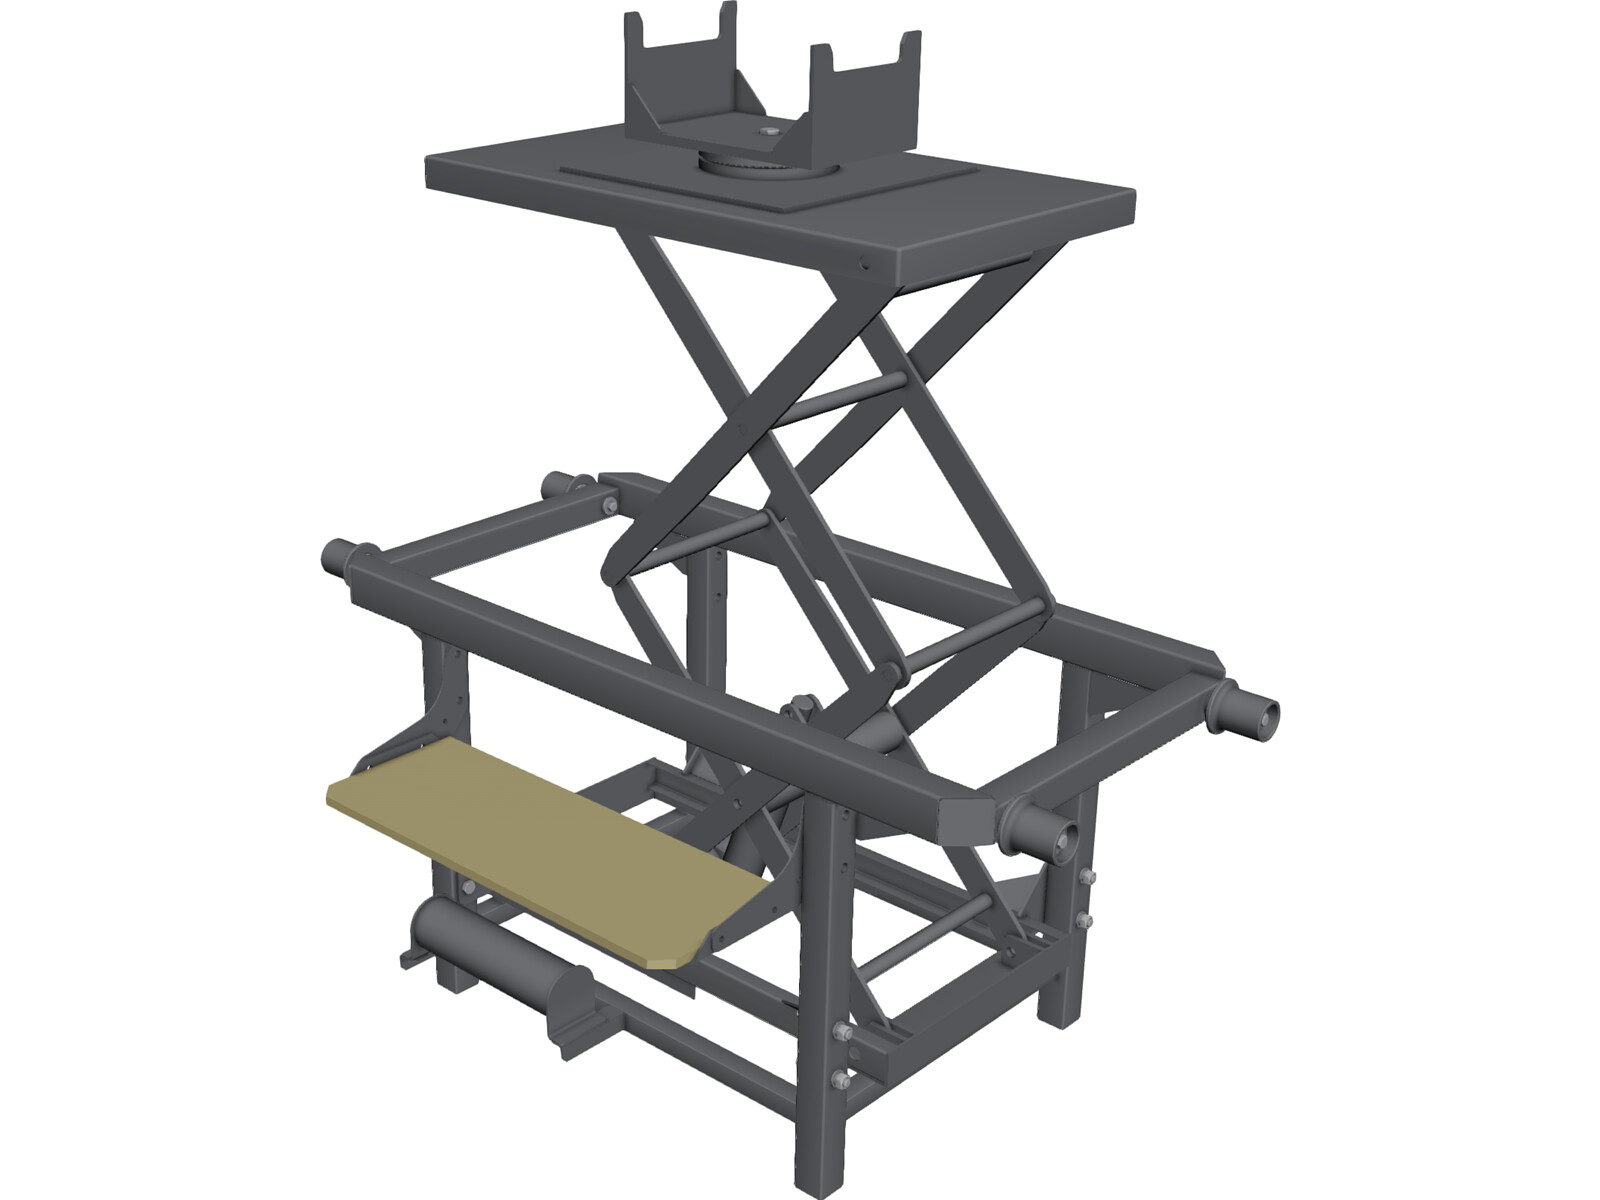 Trolley with Hidraulic Lifter 3D CAD Model